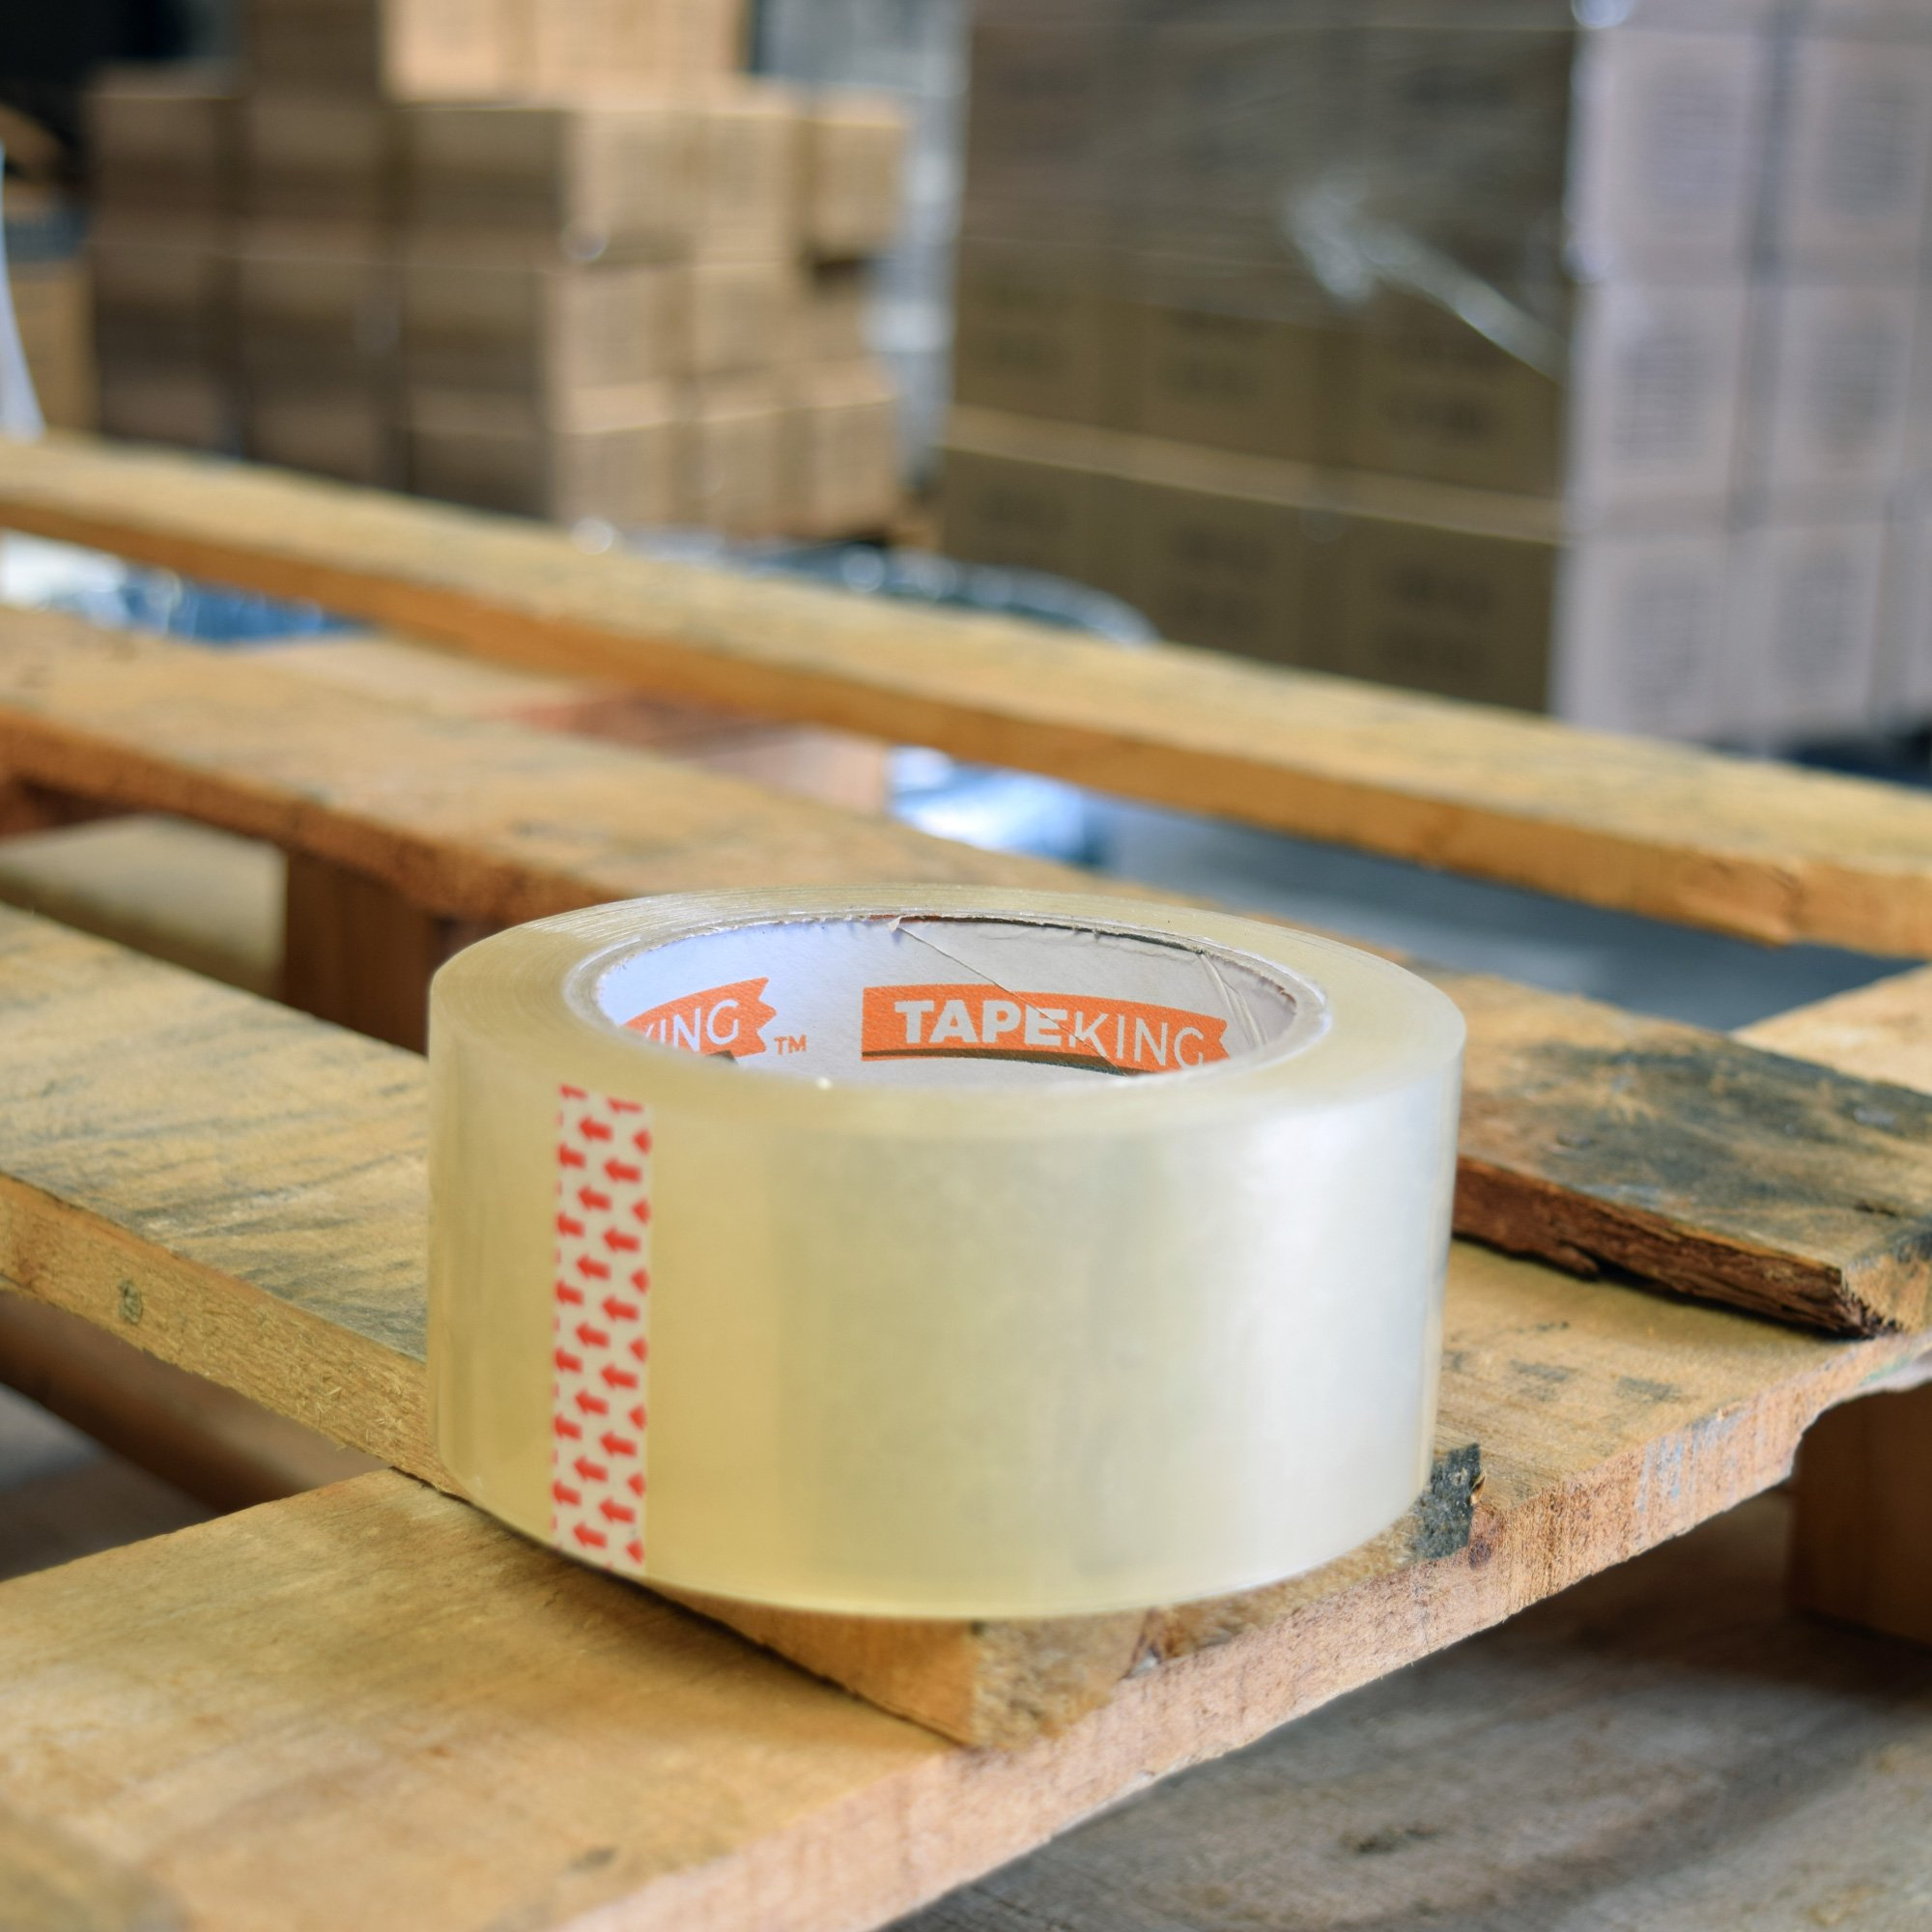 Tape King Clear Packing Tape Super Thick - 60 Yards Per Roll (Case of 36 Rolls) - Strong 3.2mil, Heavy Duty Adhesive Commercial Depot Tape for Moving, Sealing, Packaging Shipping, Office & Storage by Tape King (Image #5)